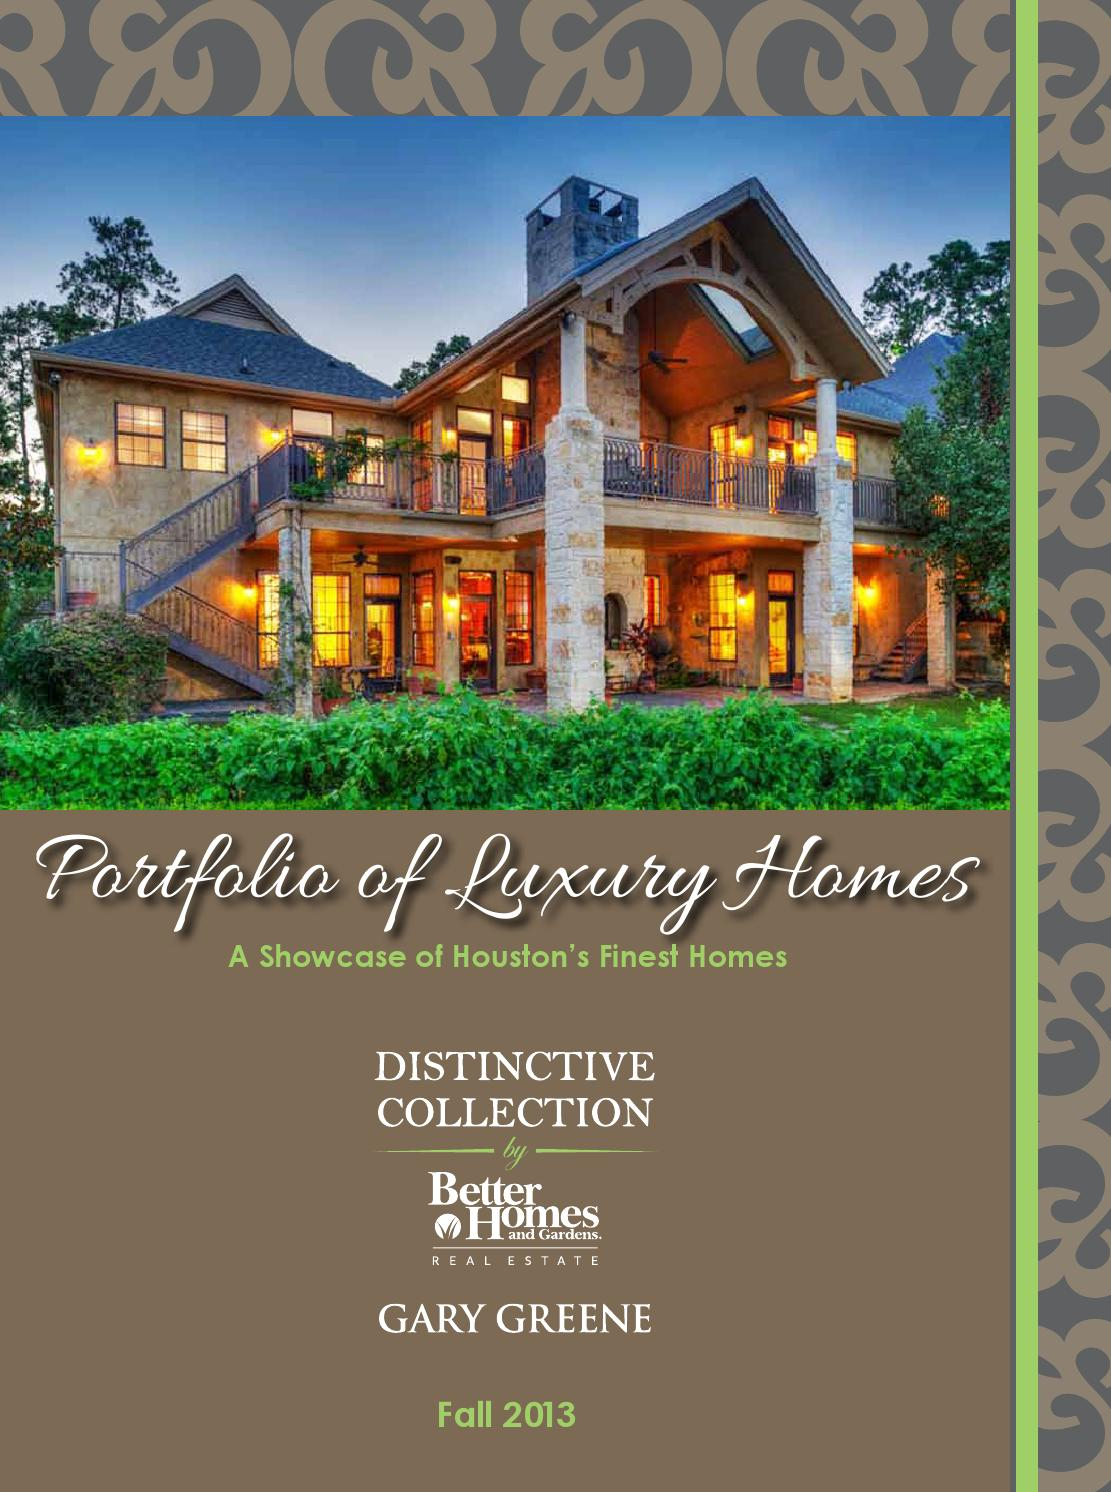 Portfolio Of Luxury Homes Fall 2013 By Better Homes And Gardens Real Estate Gary Greene Issuu